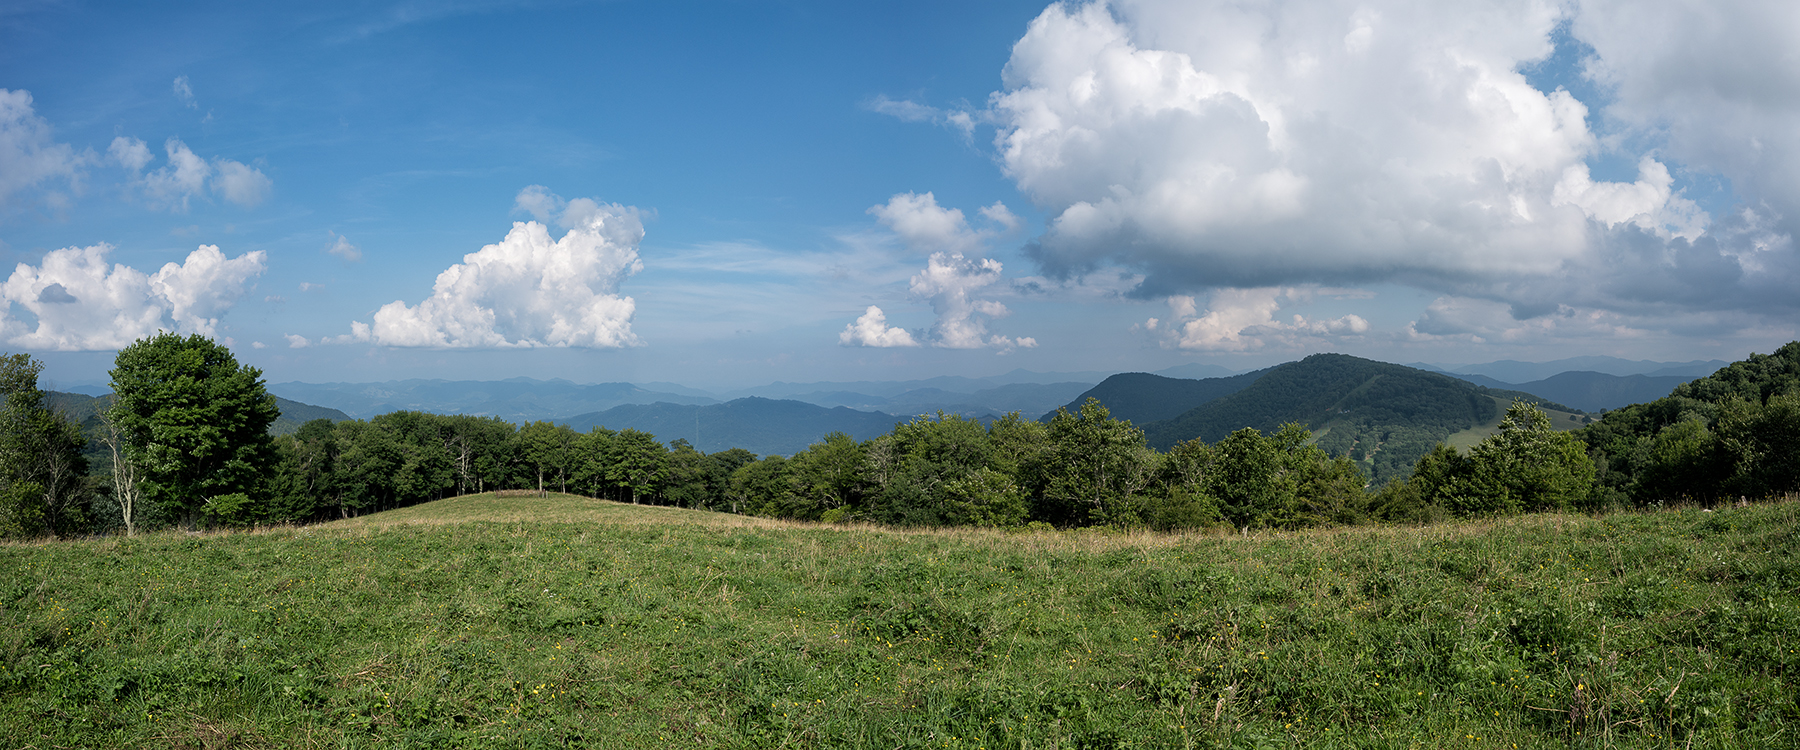 Experience the Aug. 21 eclipse with 360 degrees of open, unobstructed views in a meadow a mile high on Fie Top Mountain during a private celebration at Cataloochee Ranch in Maggie Valley.